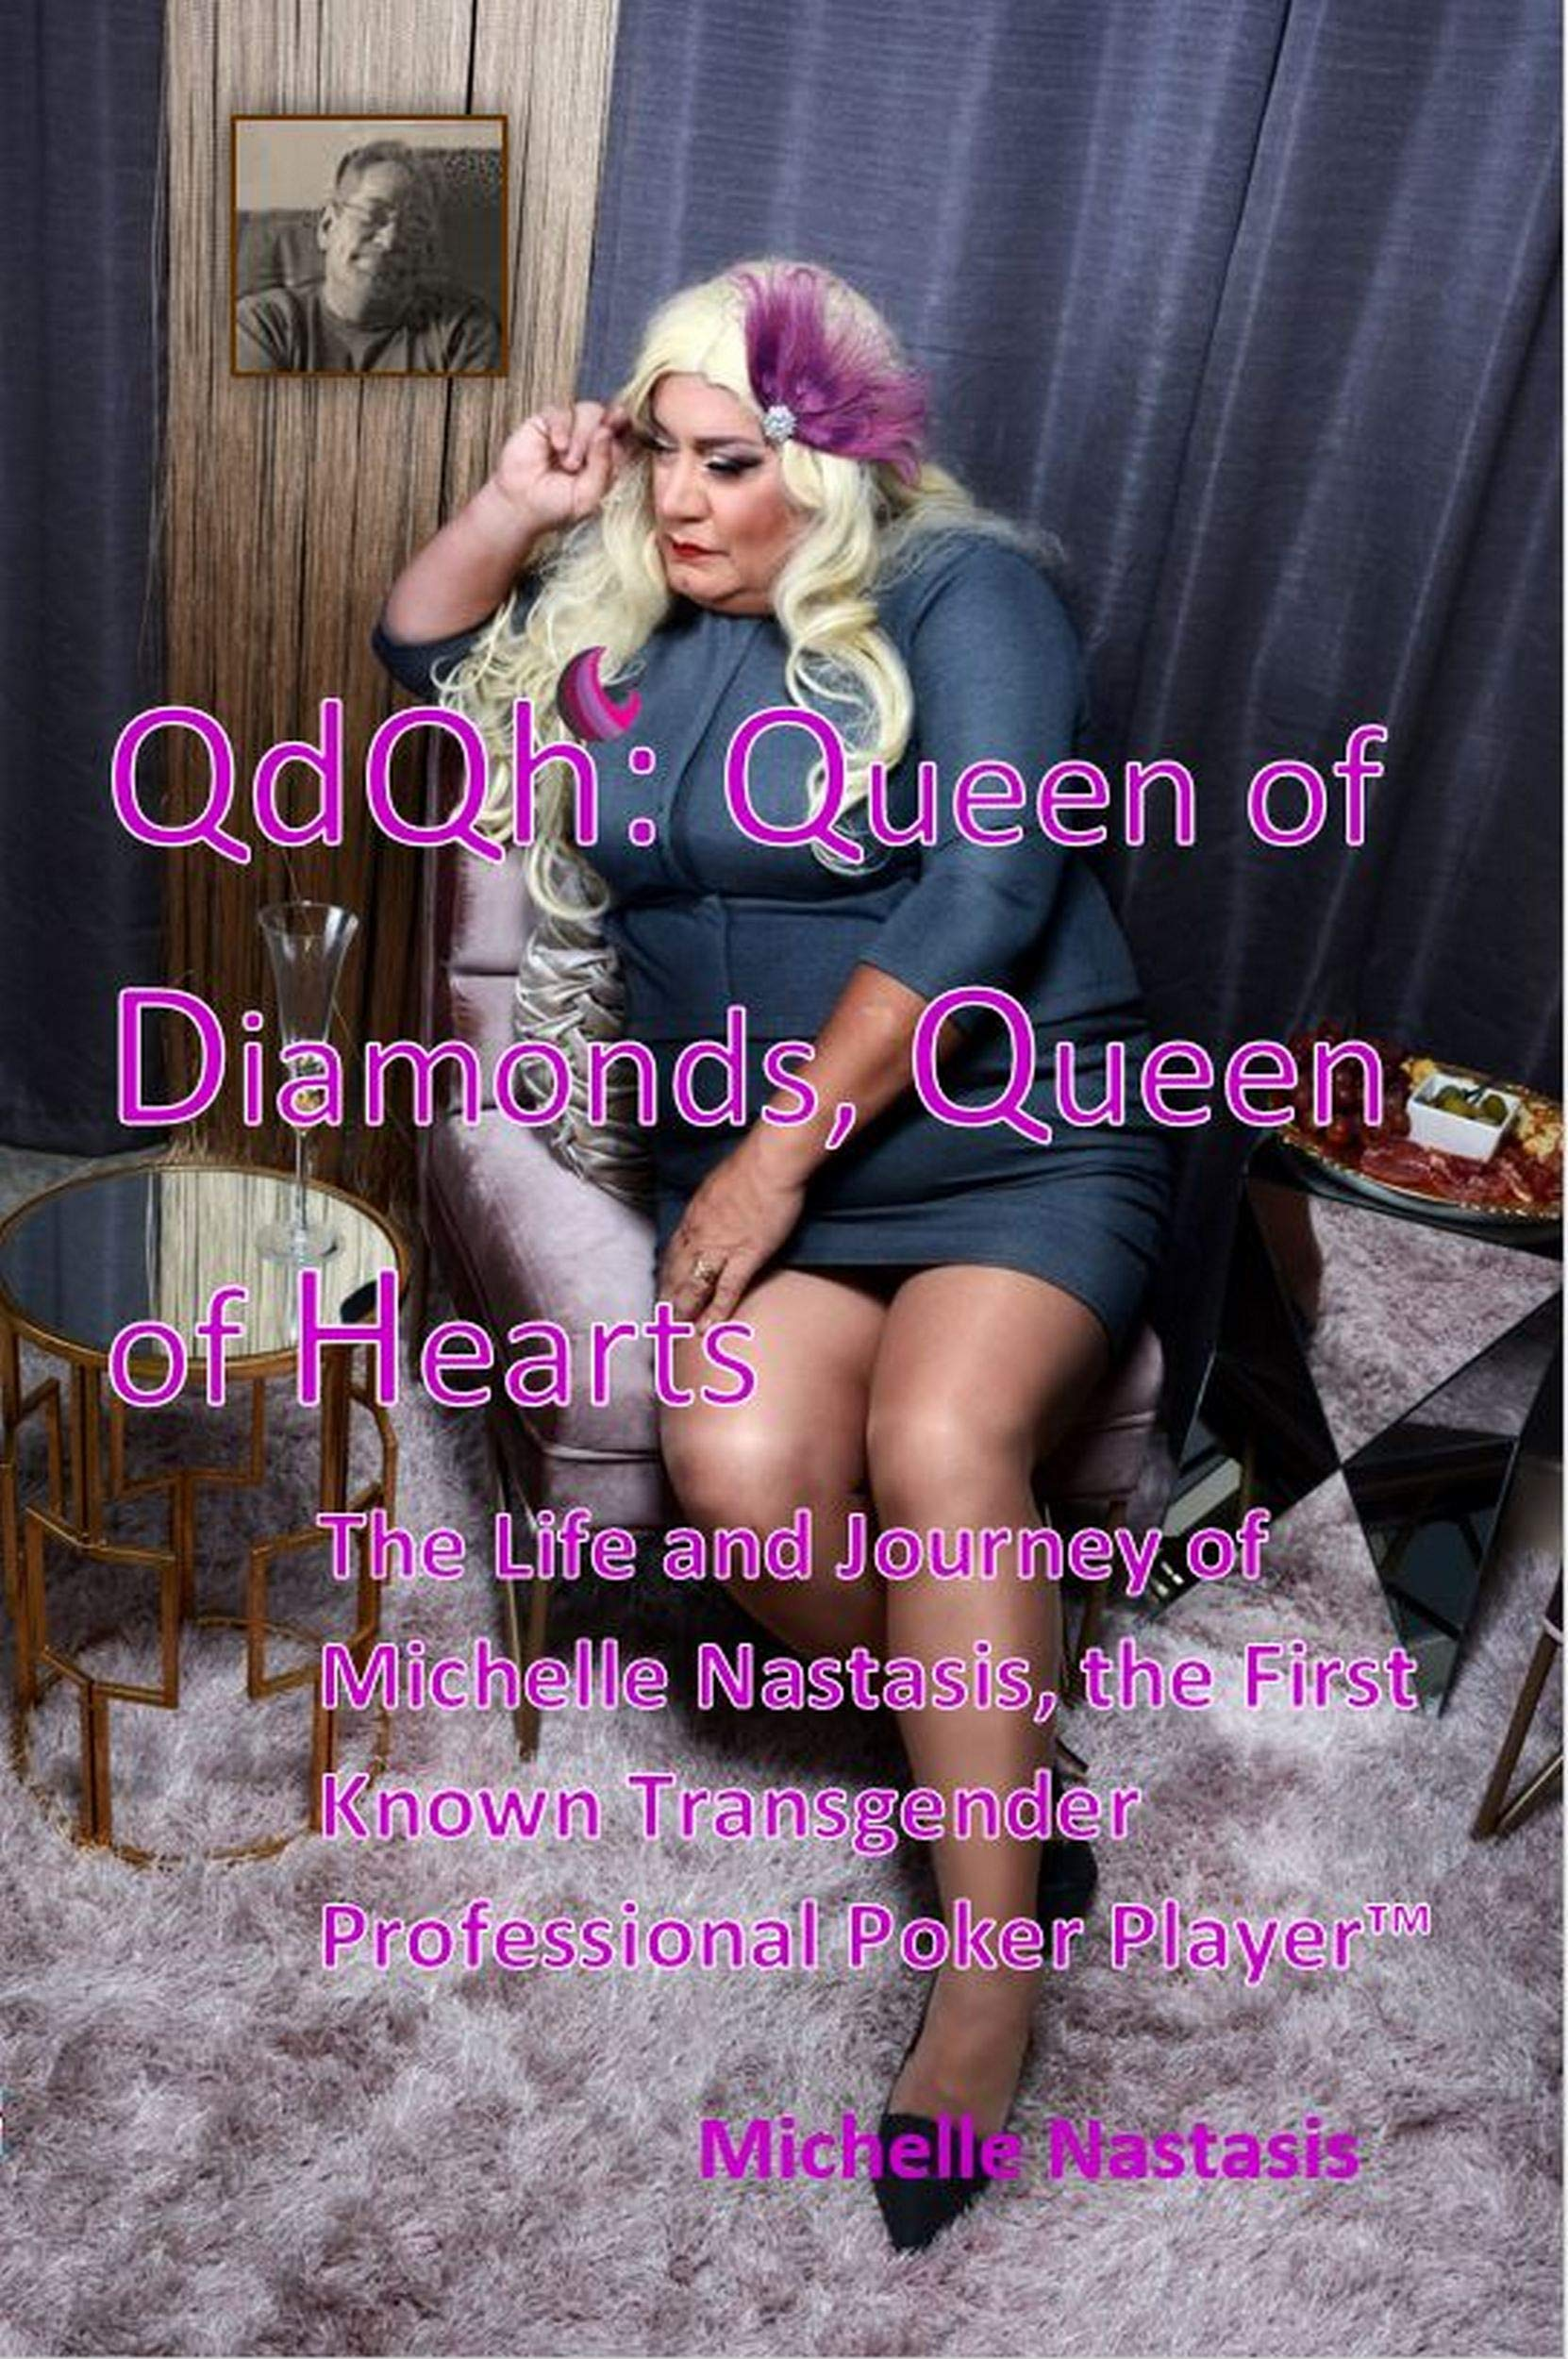 QdQh: Queen of Diamonds, Queen of Hearts: The Life and Journey of Michelle Nastasis, the First Known Transgender Professional Poker Player™